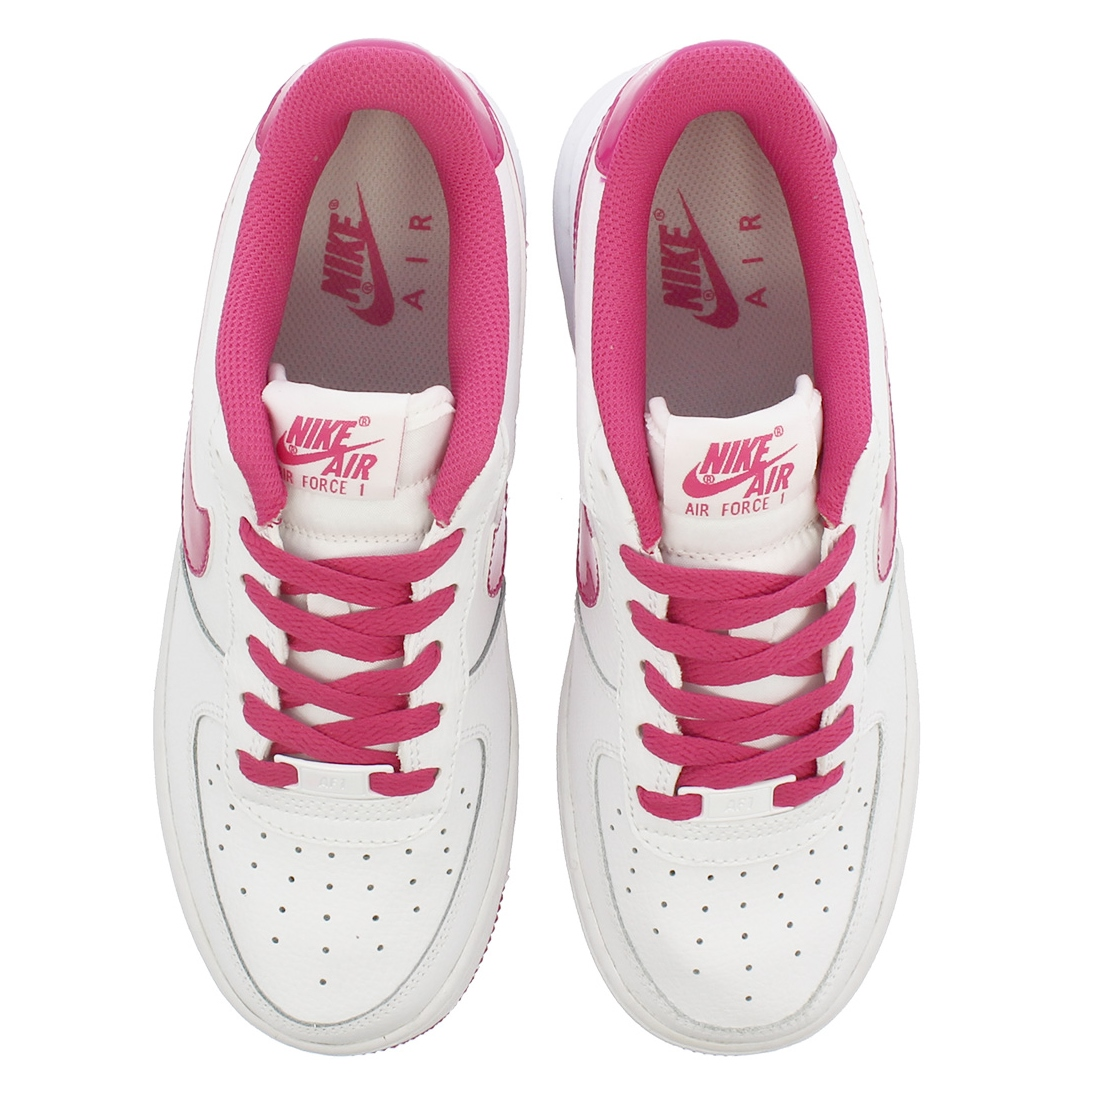 Force Air 314 Nike 219 Pink Gs 124 Whitehot 1 v0ON8ywmn